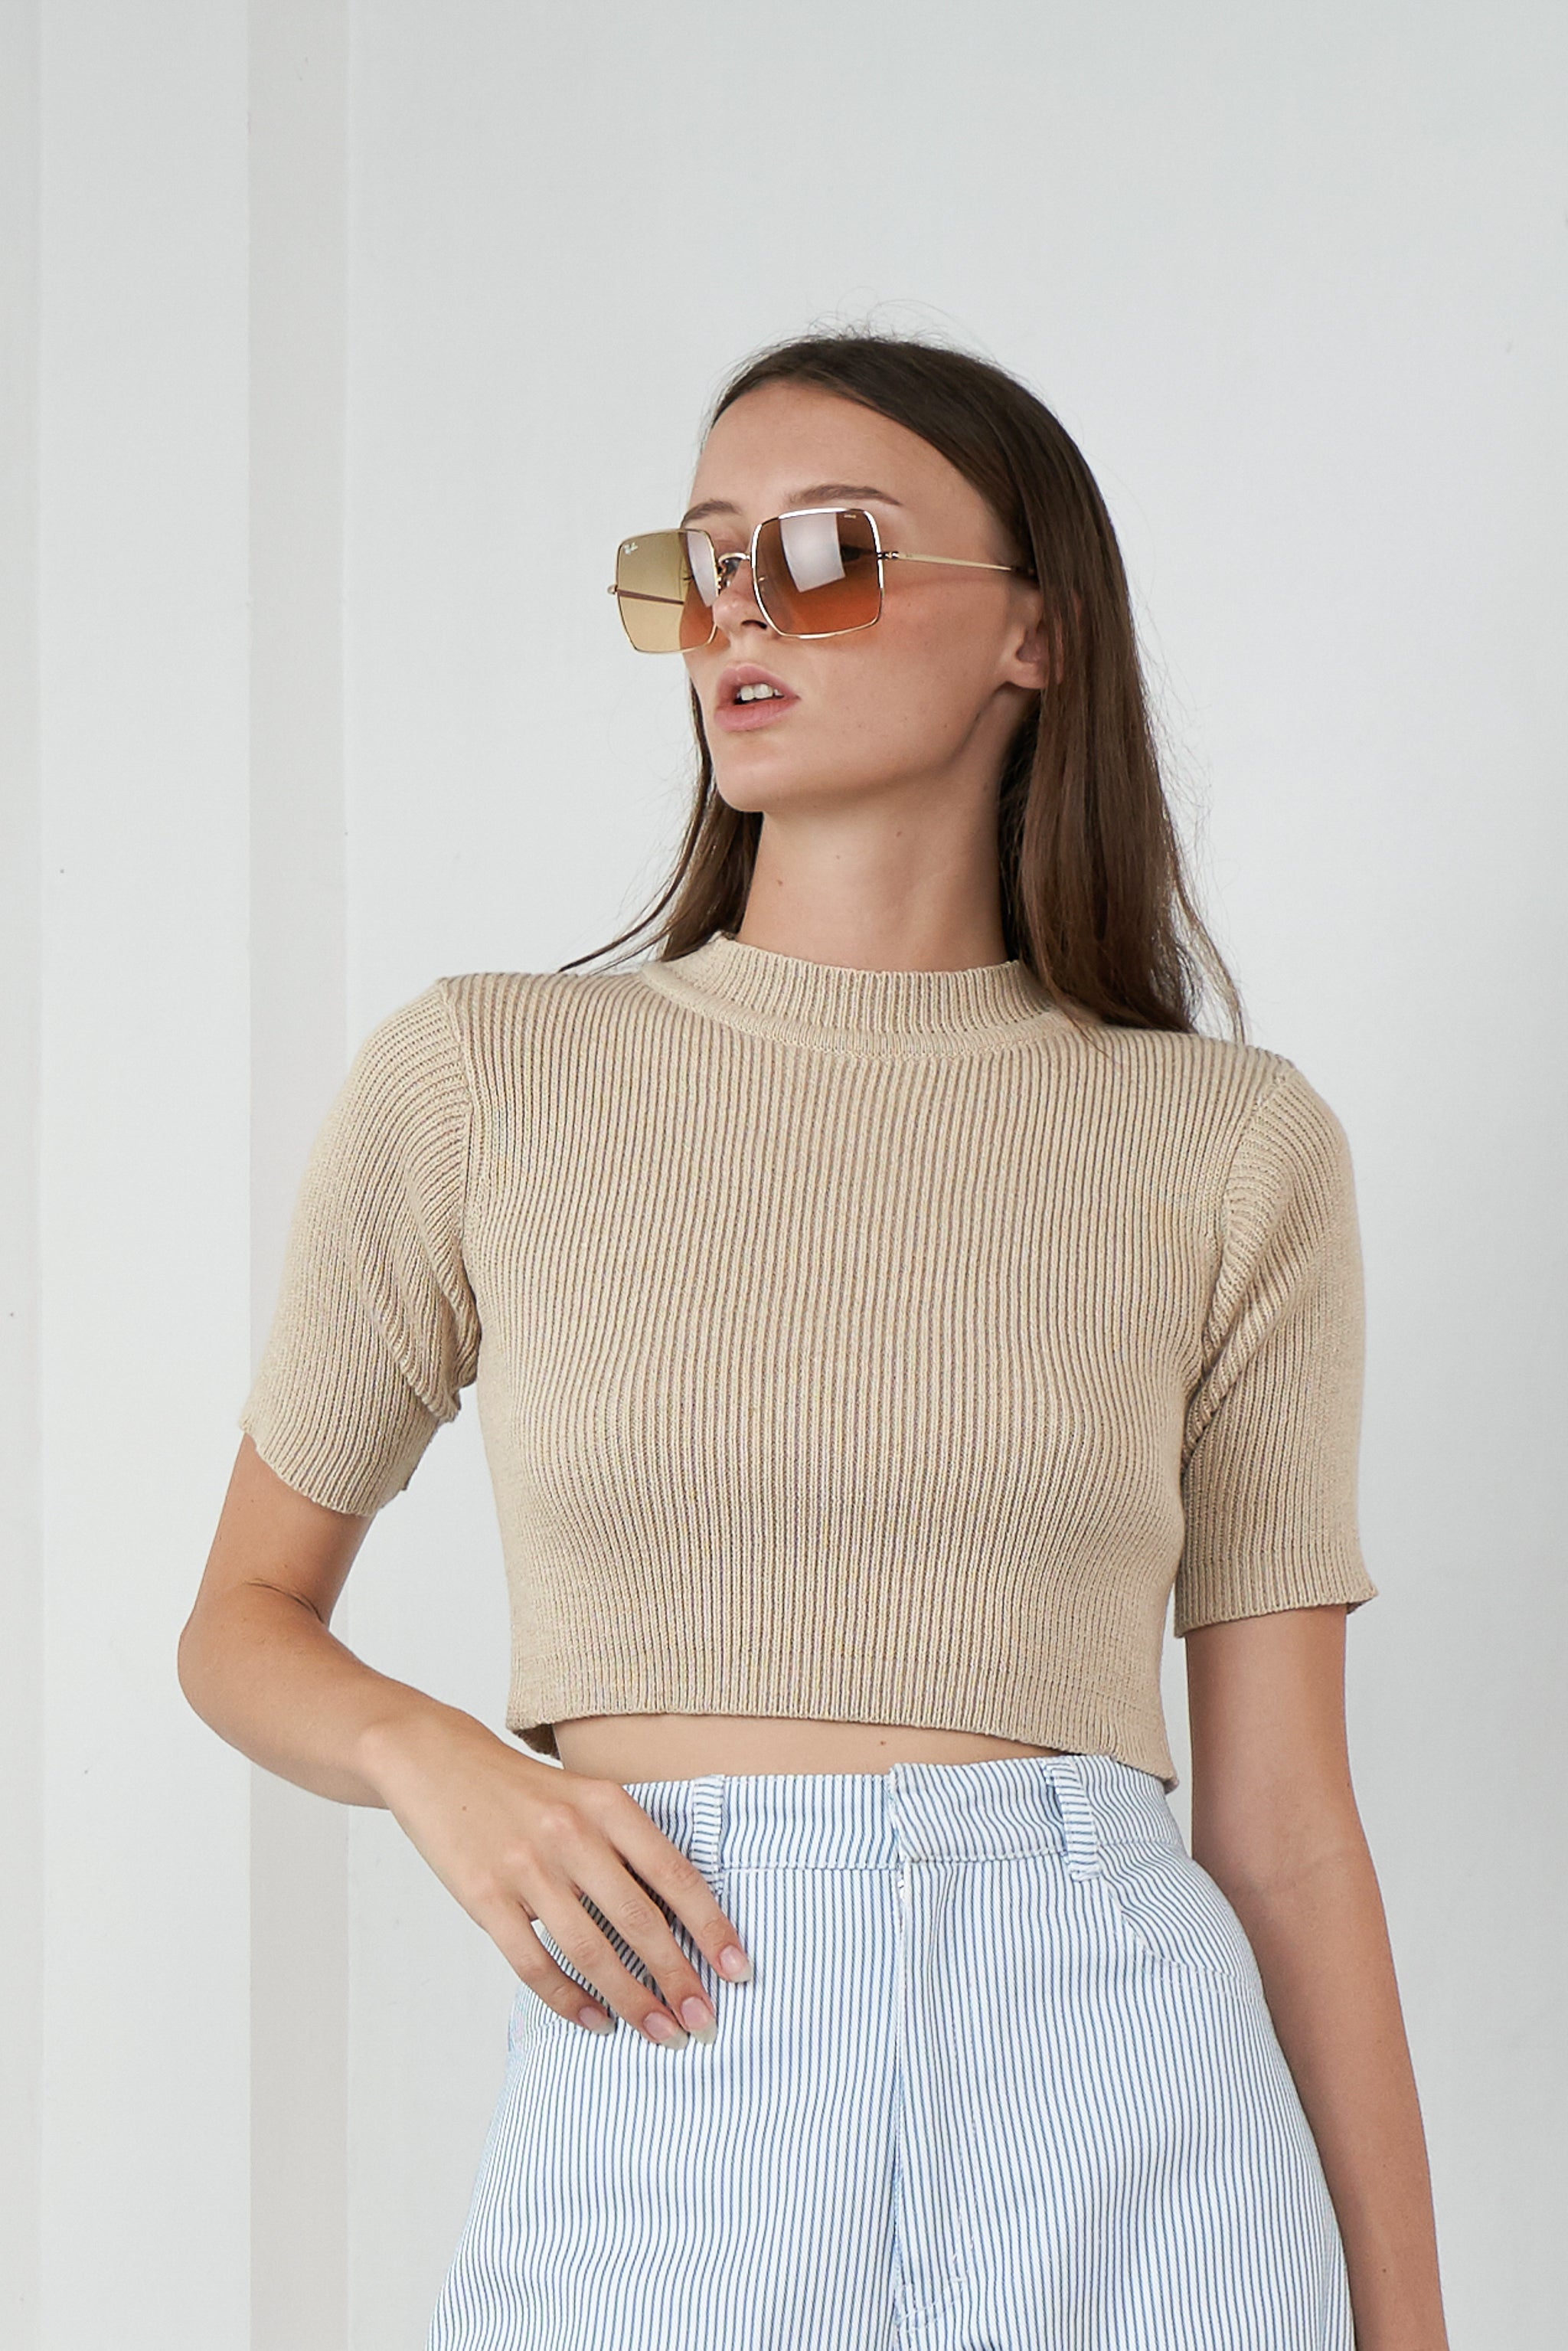 Highrise Knit Top in Sand